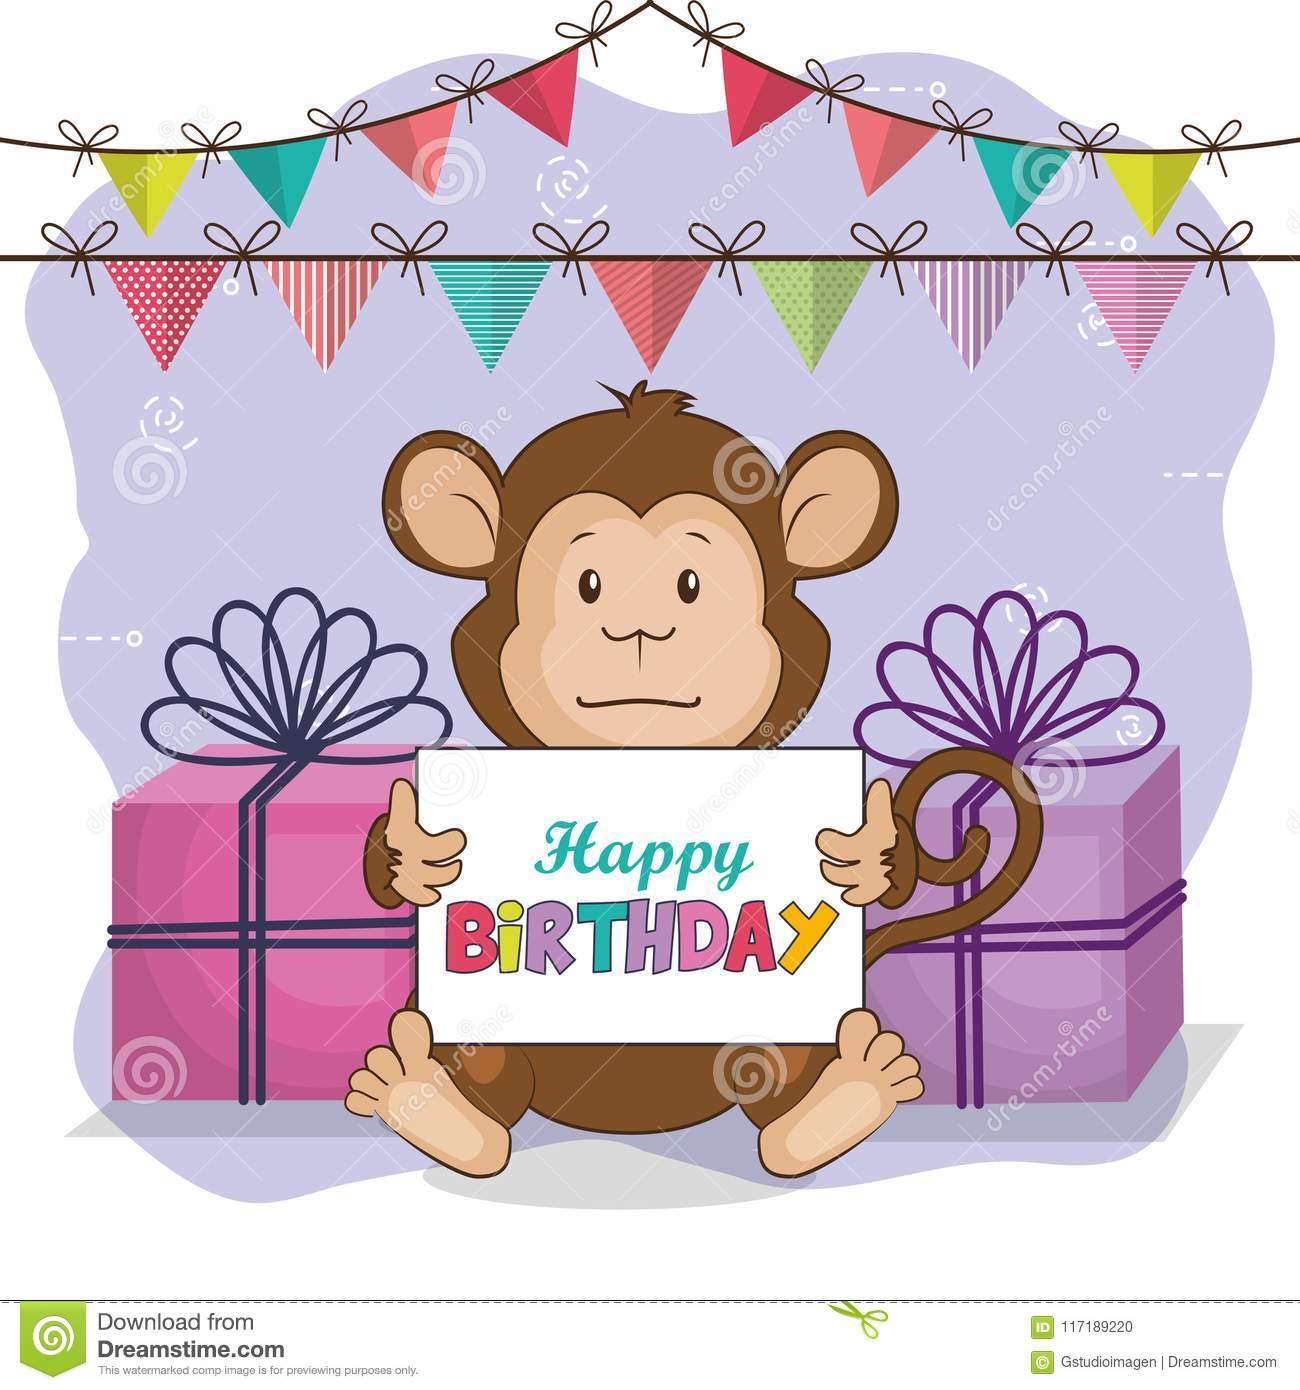 Happy Birthday Card With Cute Monkey